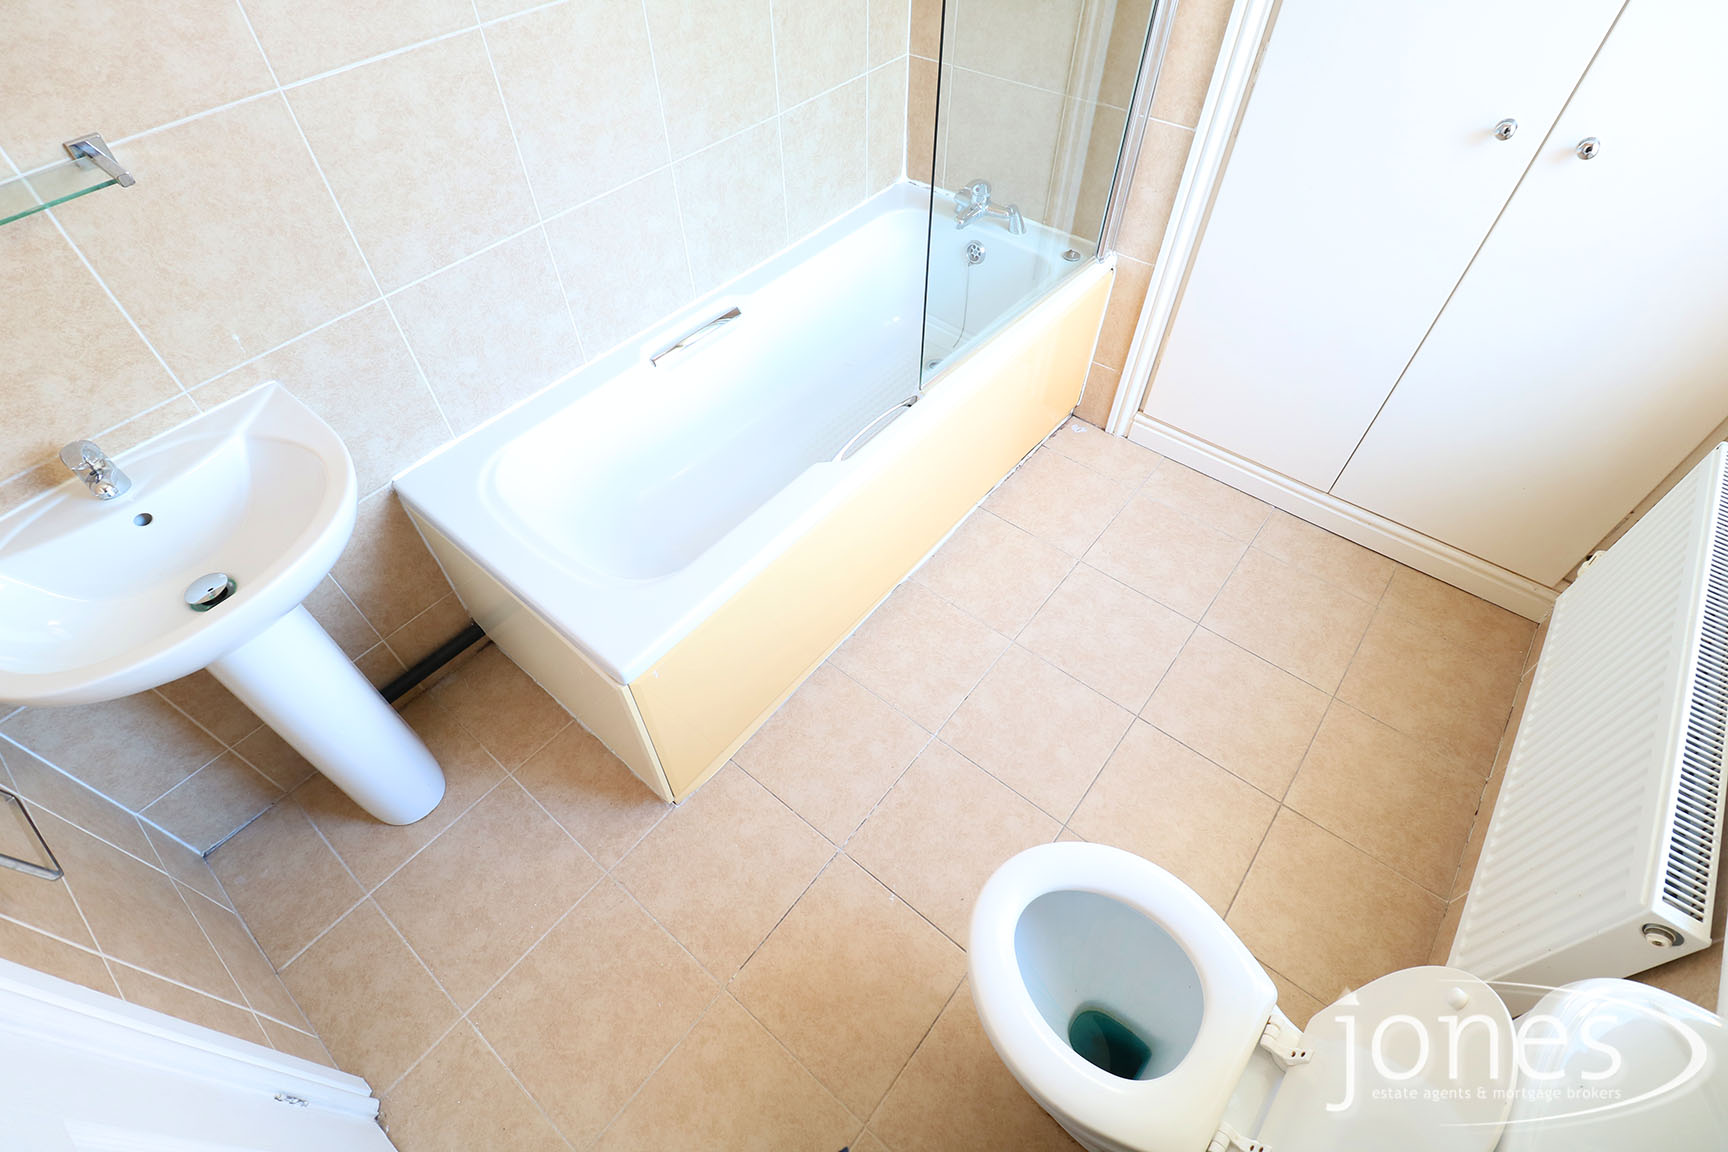 Home for Sale Let - Photo 08 Castlereagh Road,  Stockton on Tees, TS19 0DL